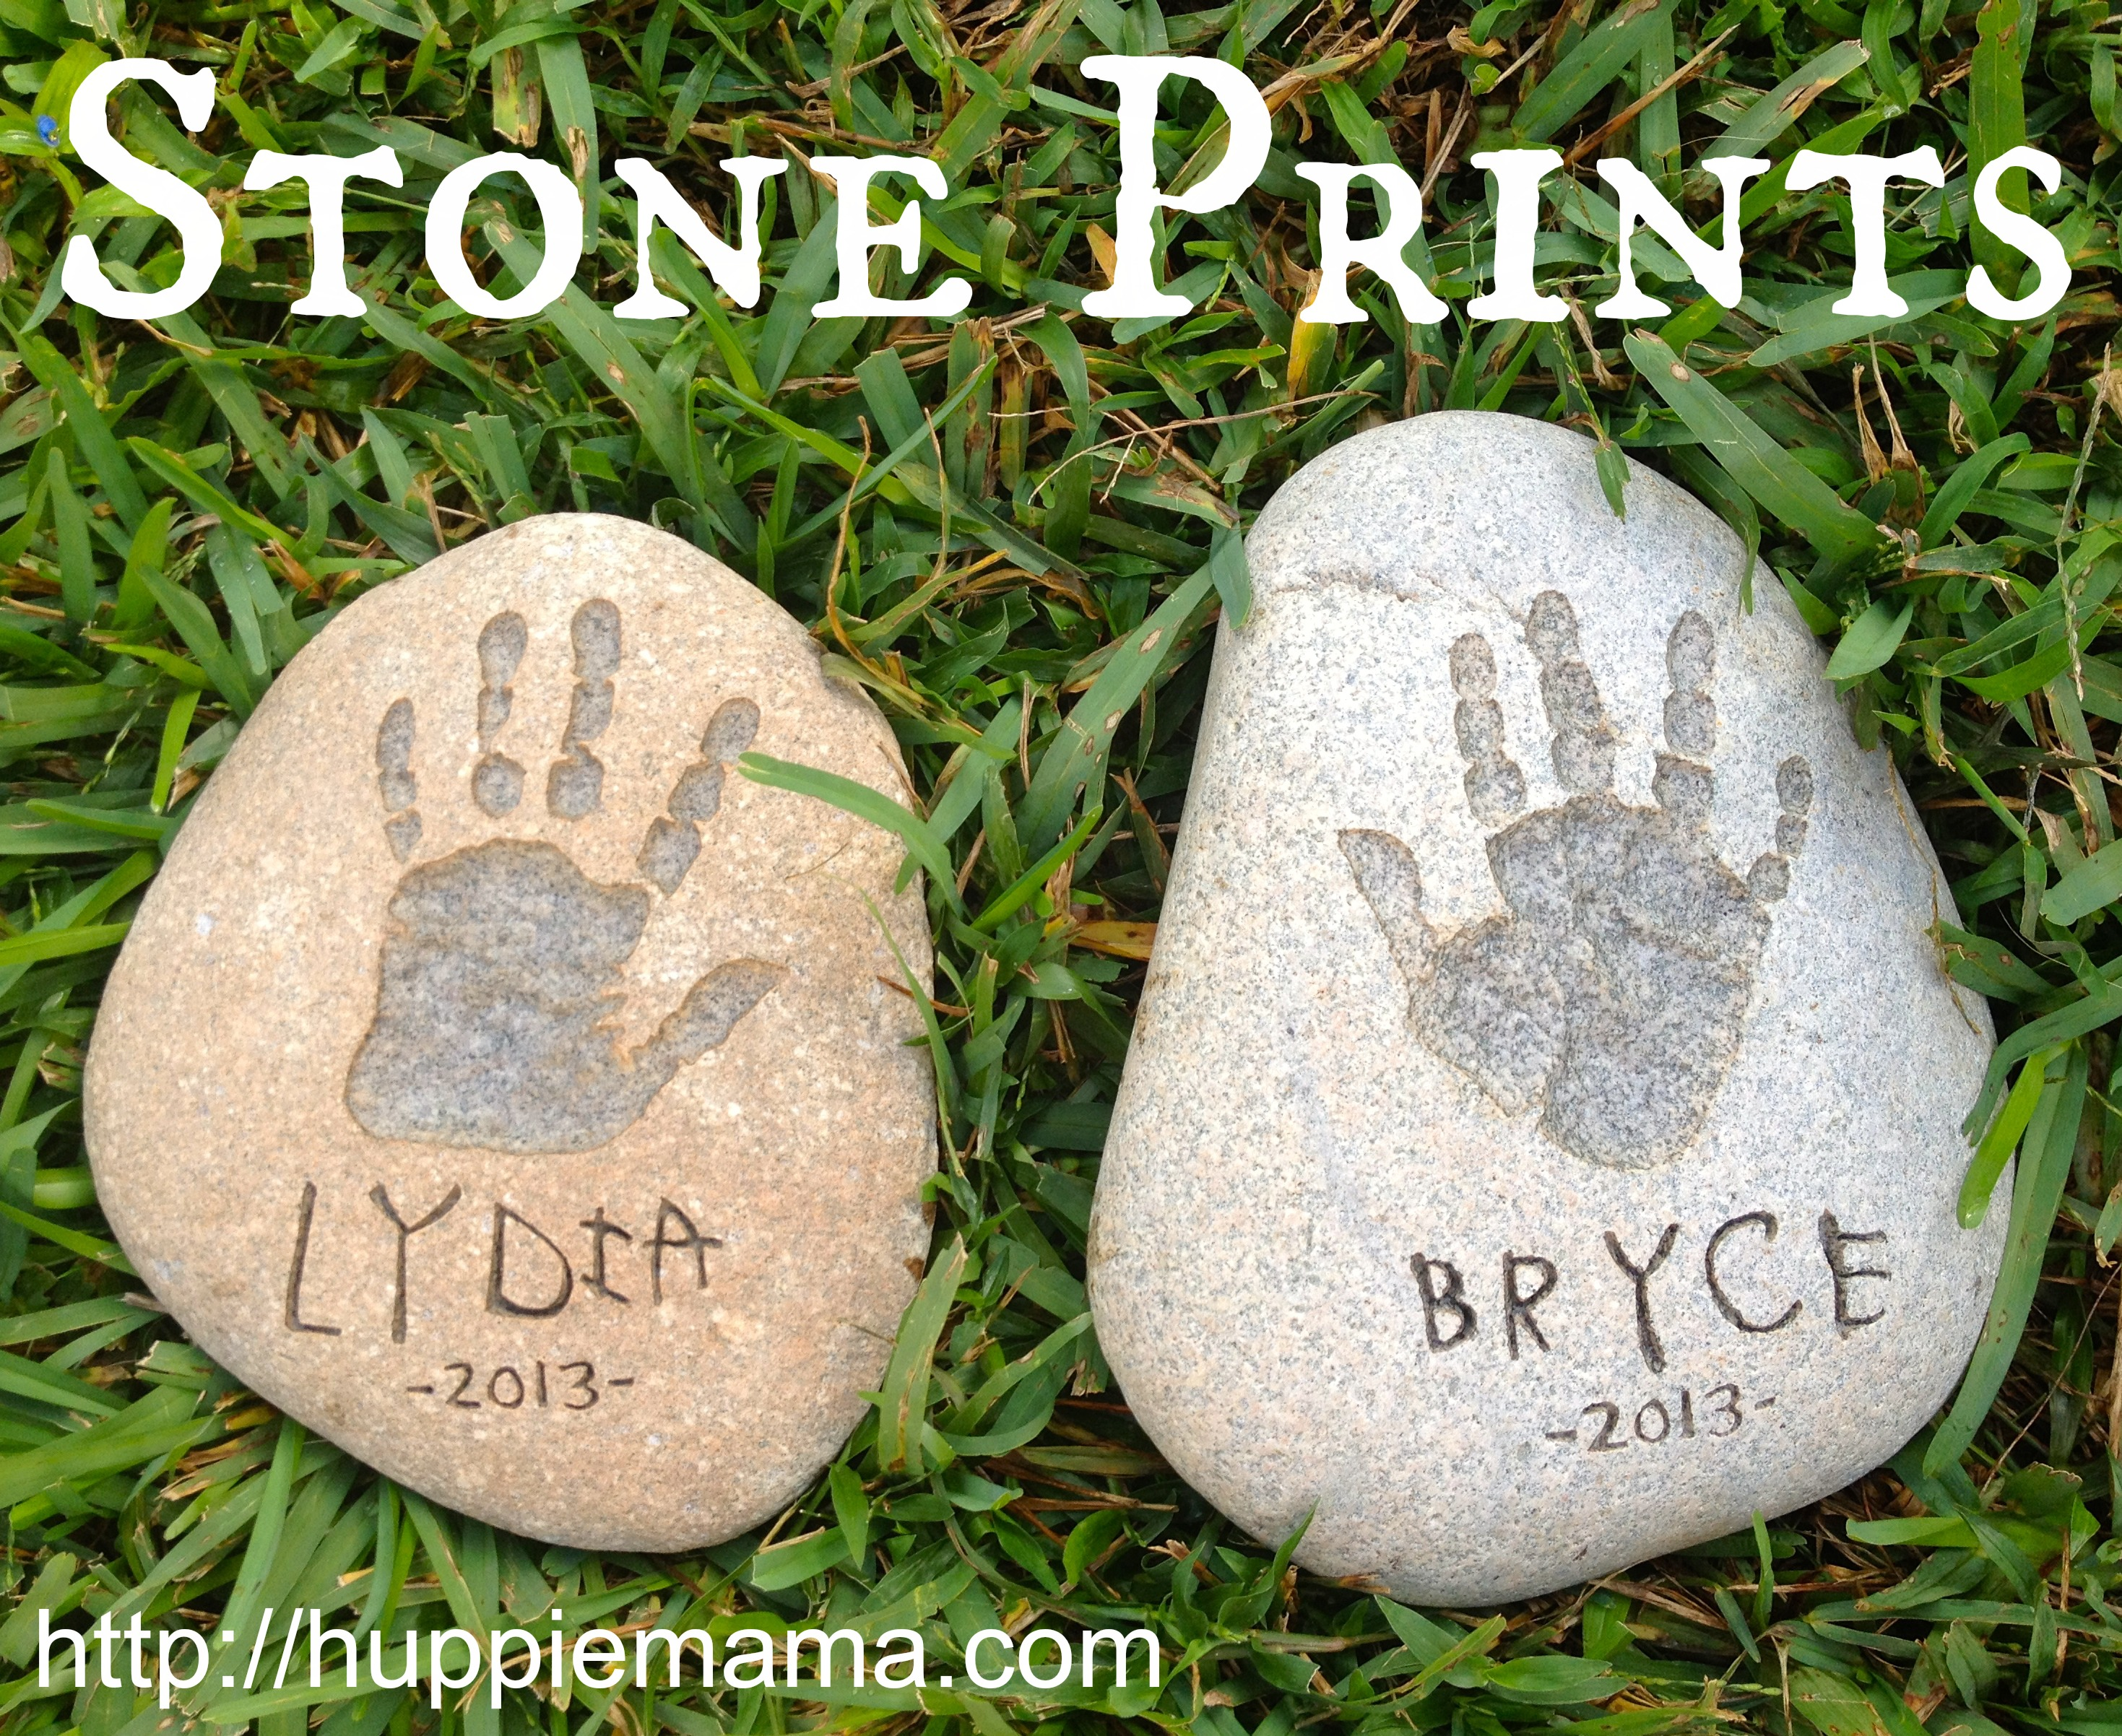 essay on the family stone Learn exactly what happened in this chapter, scene, or section of harry potter and the sorcerer's stone and what it means perfect for acing essays, tests, and quizzes, as well as for writing lesson plans.